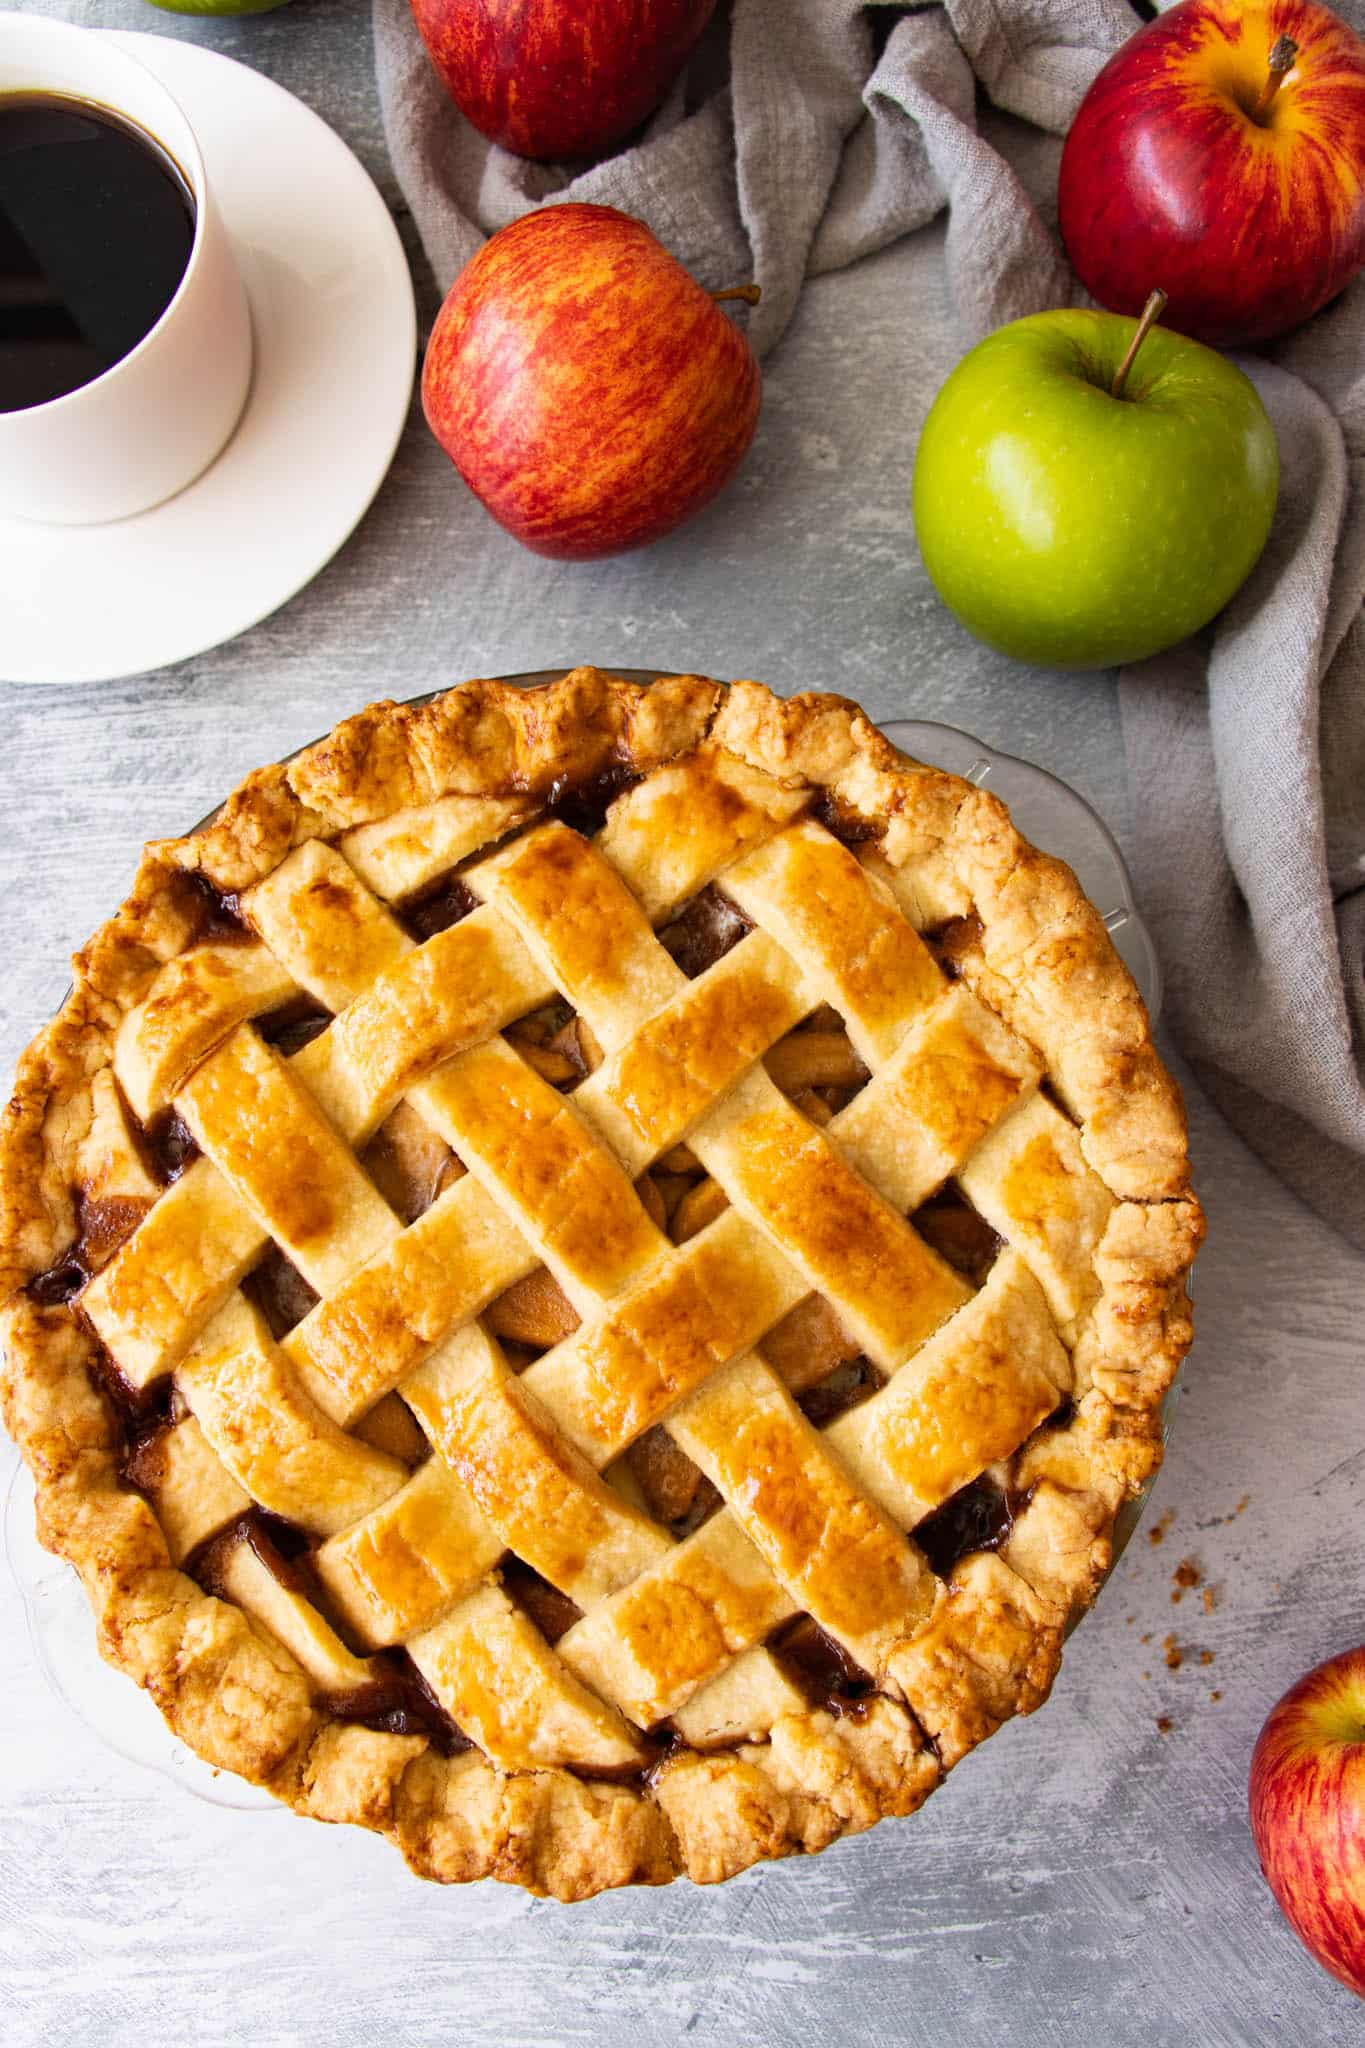 Fresh baked apple pie with a golden brown crust and caramelised apple pie filling